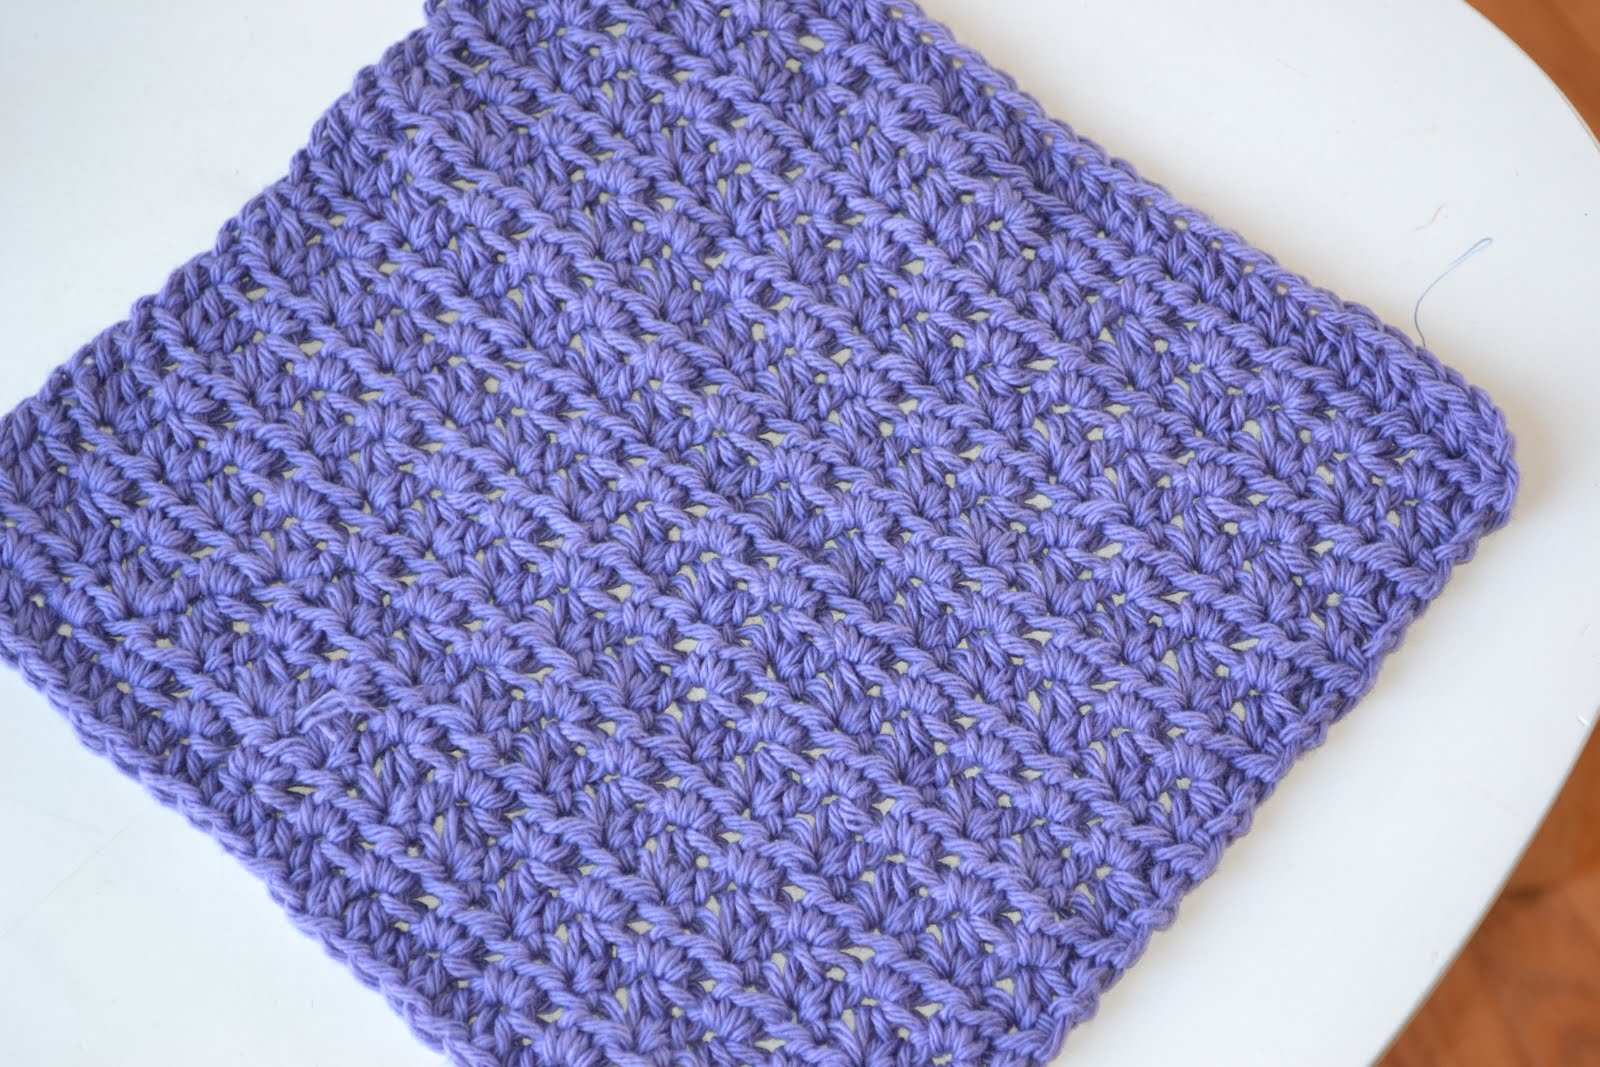 Crocheting Dishcloths : Crochet in Color: Dishcloth Pattern